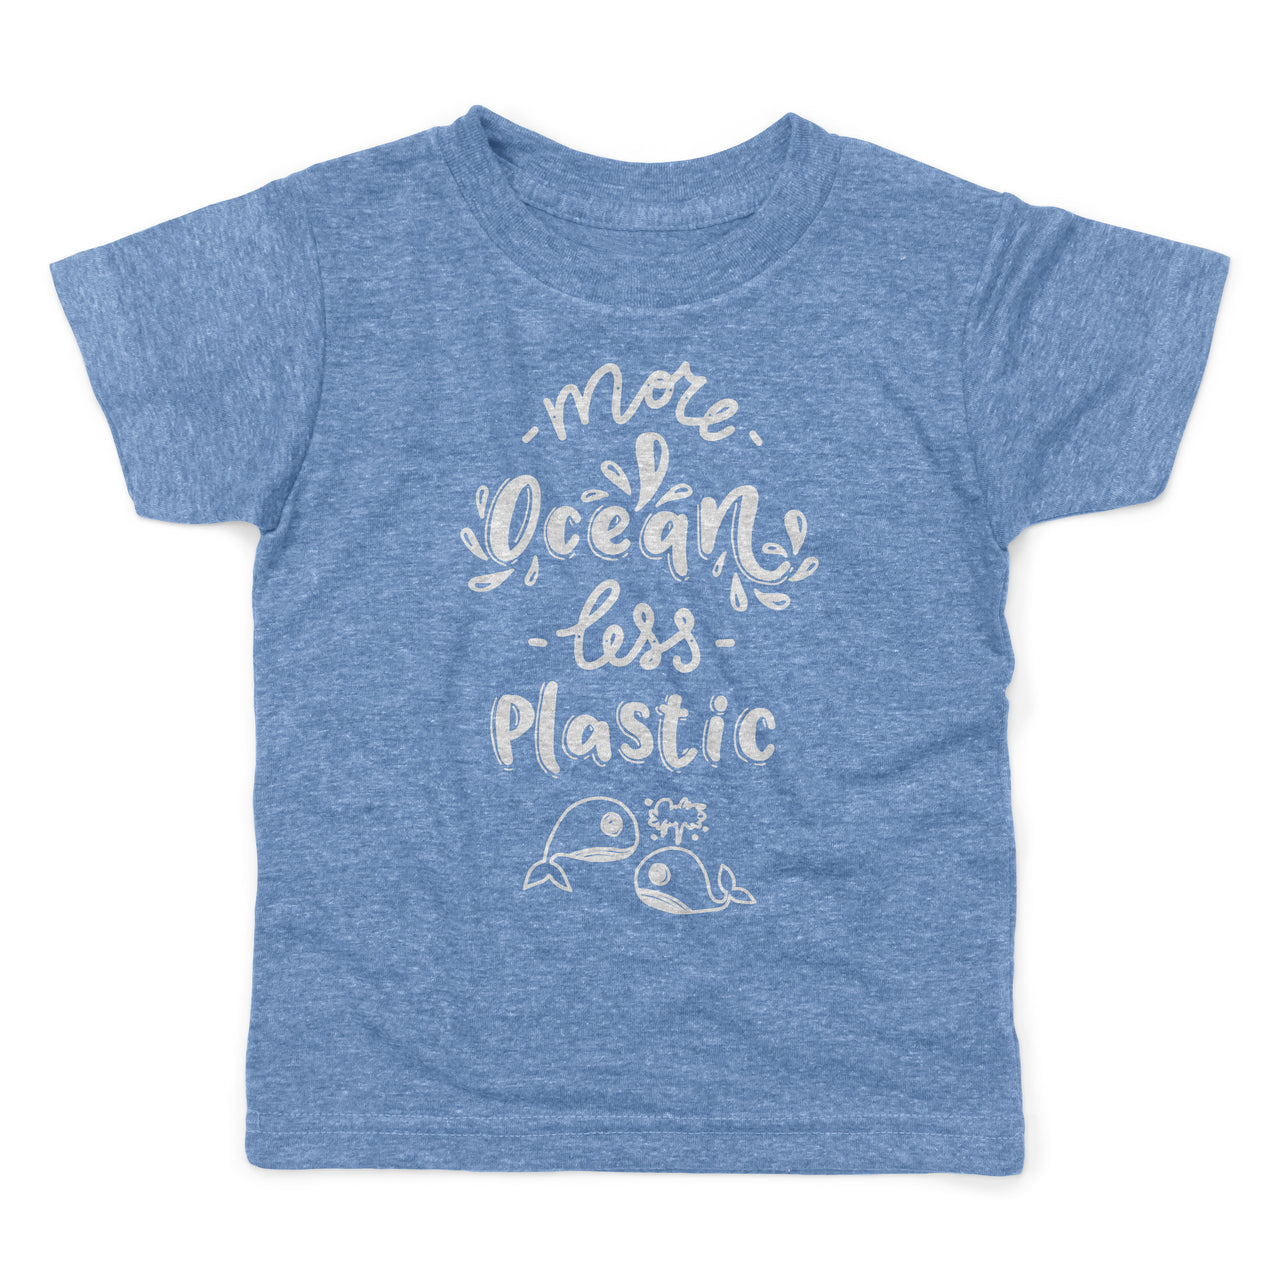 More Ocean Less Plastic Environment Save Our Seas Skip Straws Organic Cotton Recycled Shirt Toddlers